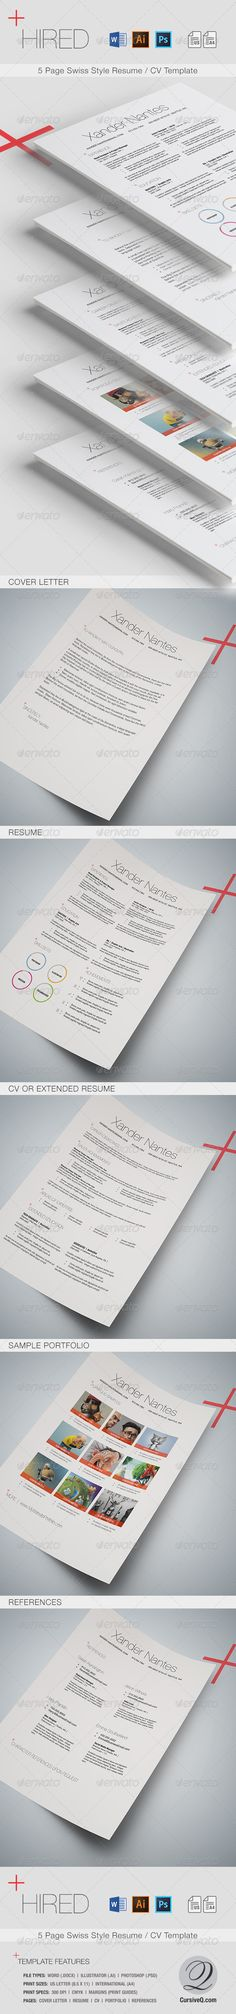 Clean ResumeCv Template Download HttpGraphicriverNetItem